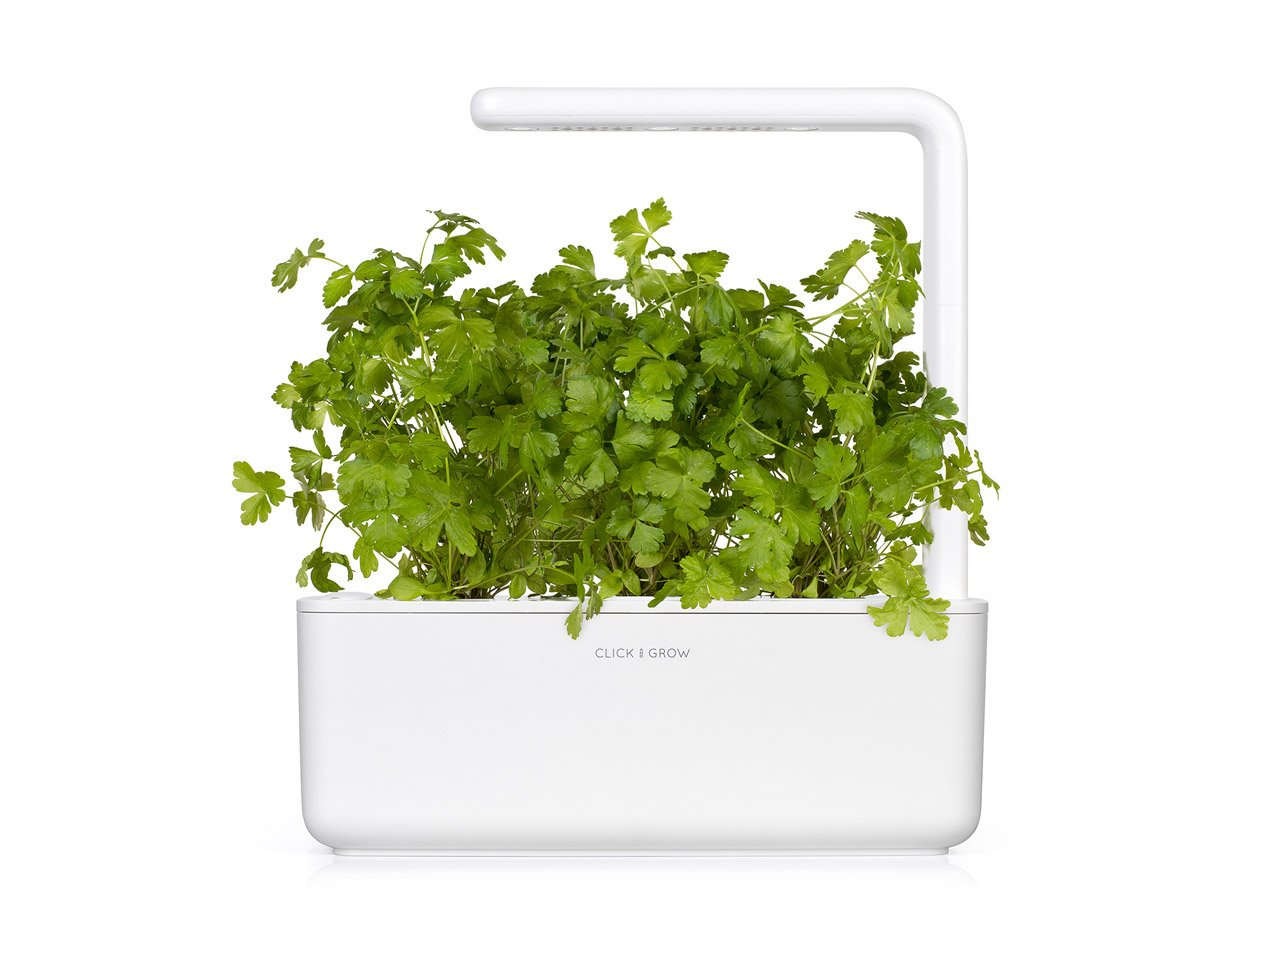 Parsley (Petroselinum crispum) capsule - Click & Grow indoor garden